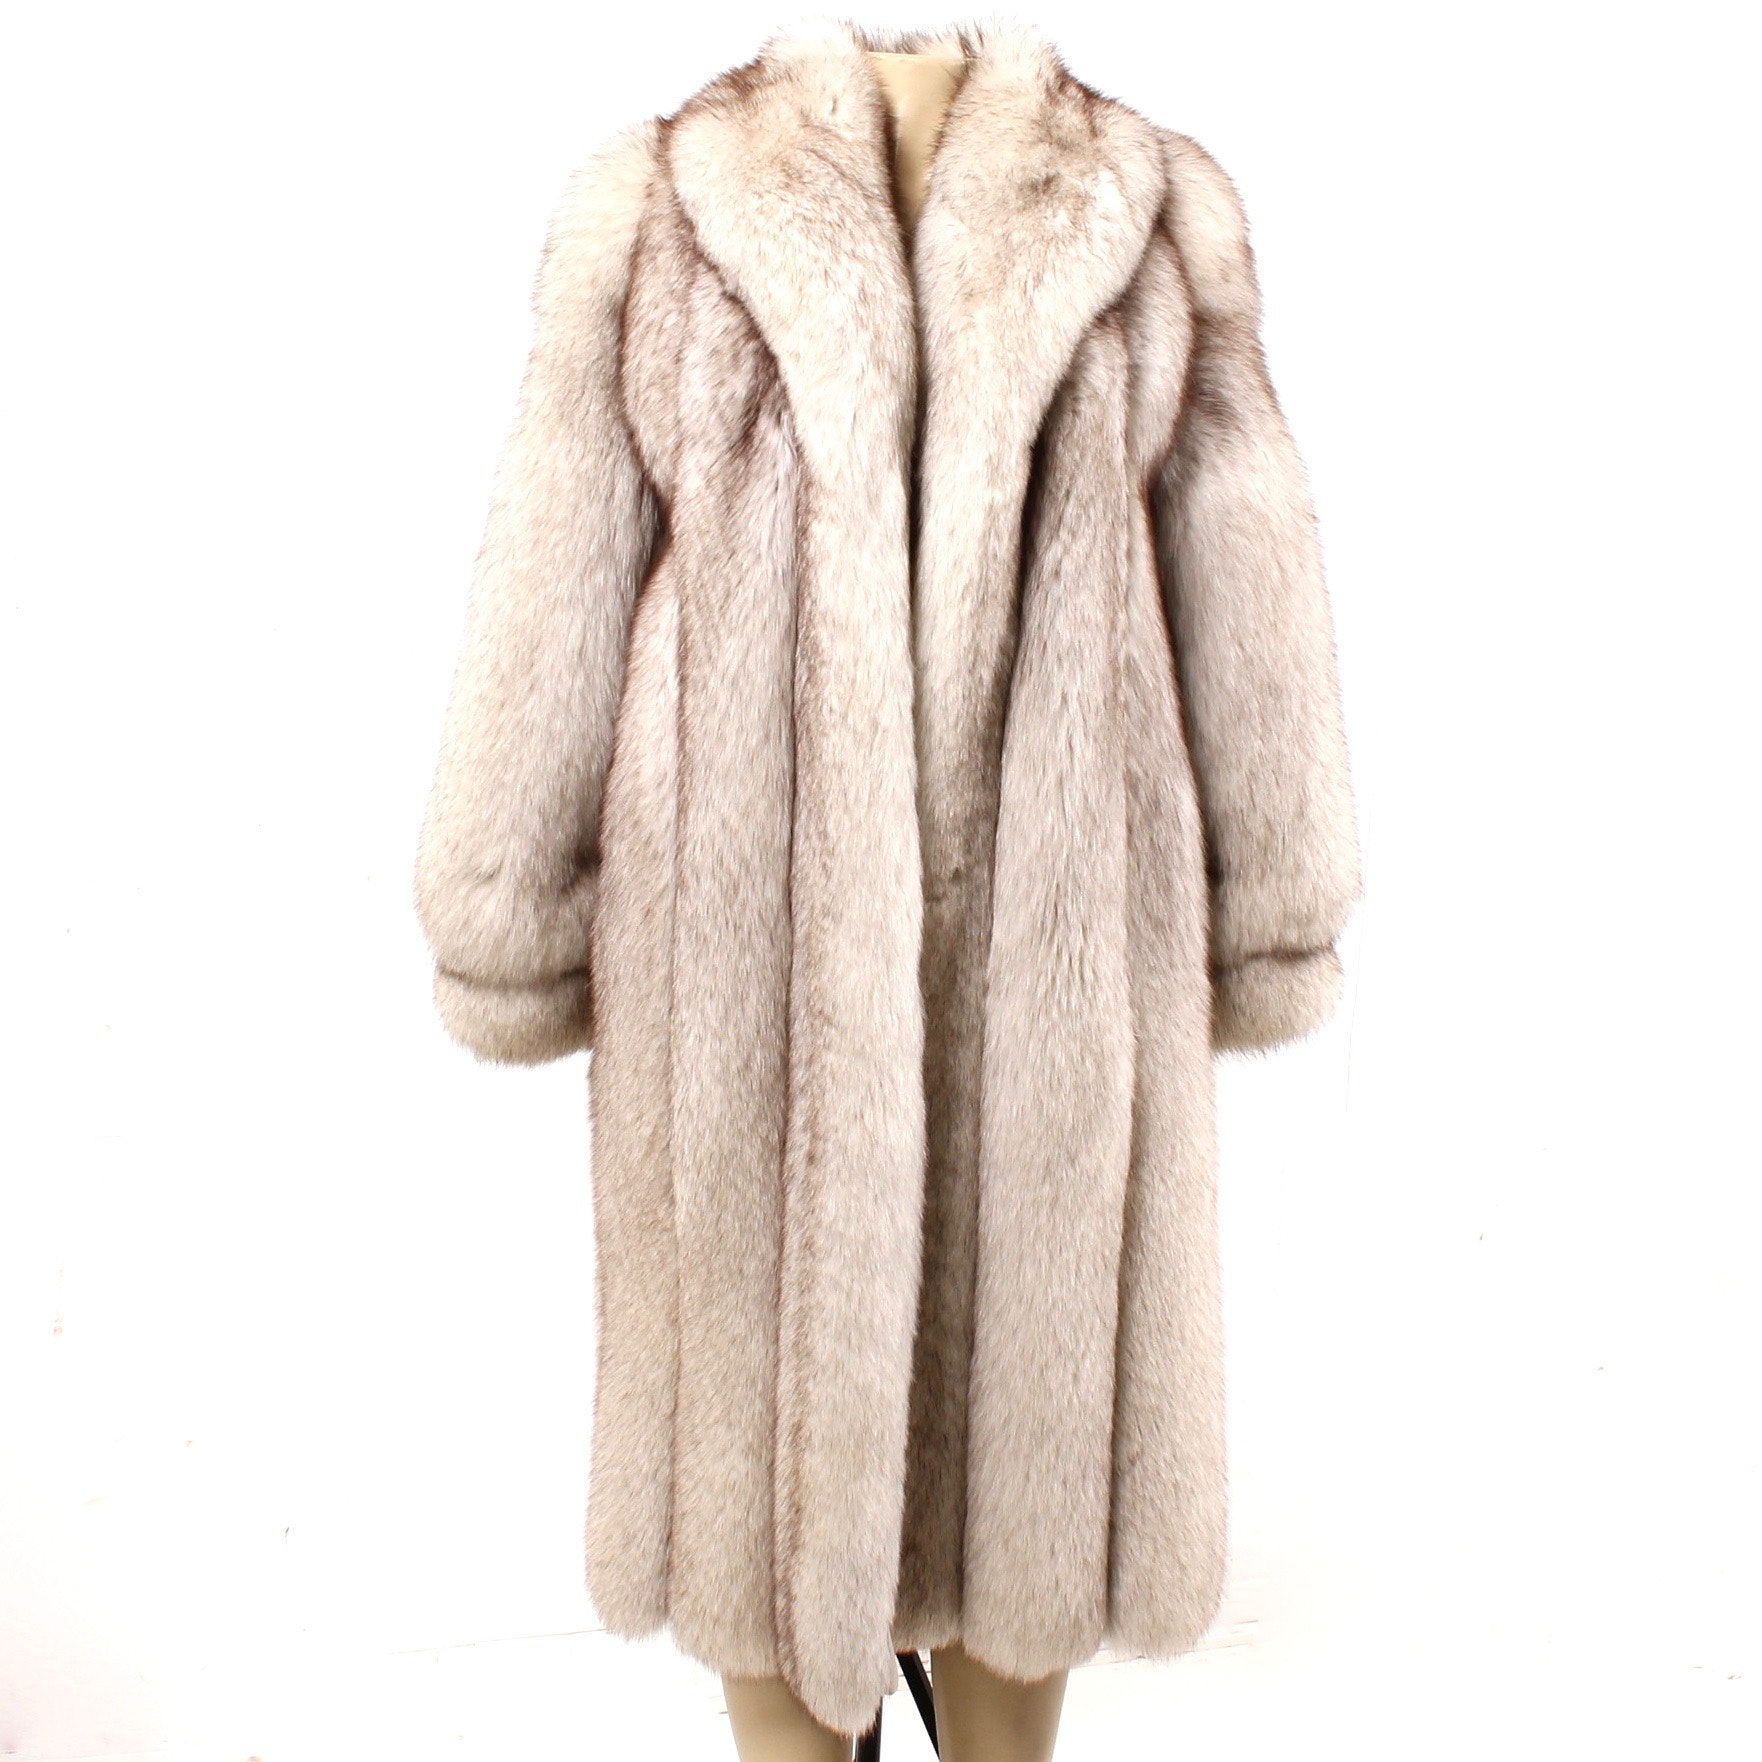 R.M. Taylor Co. Blue Fox Fur Ankle-Length Coat